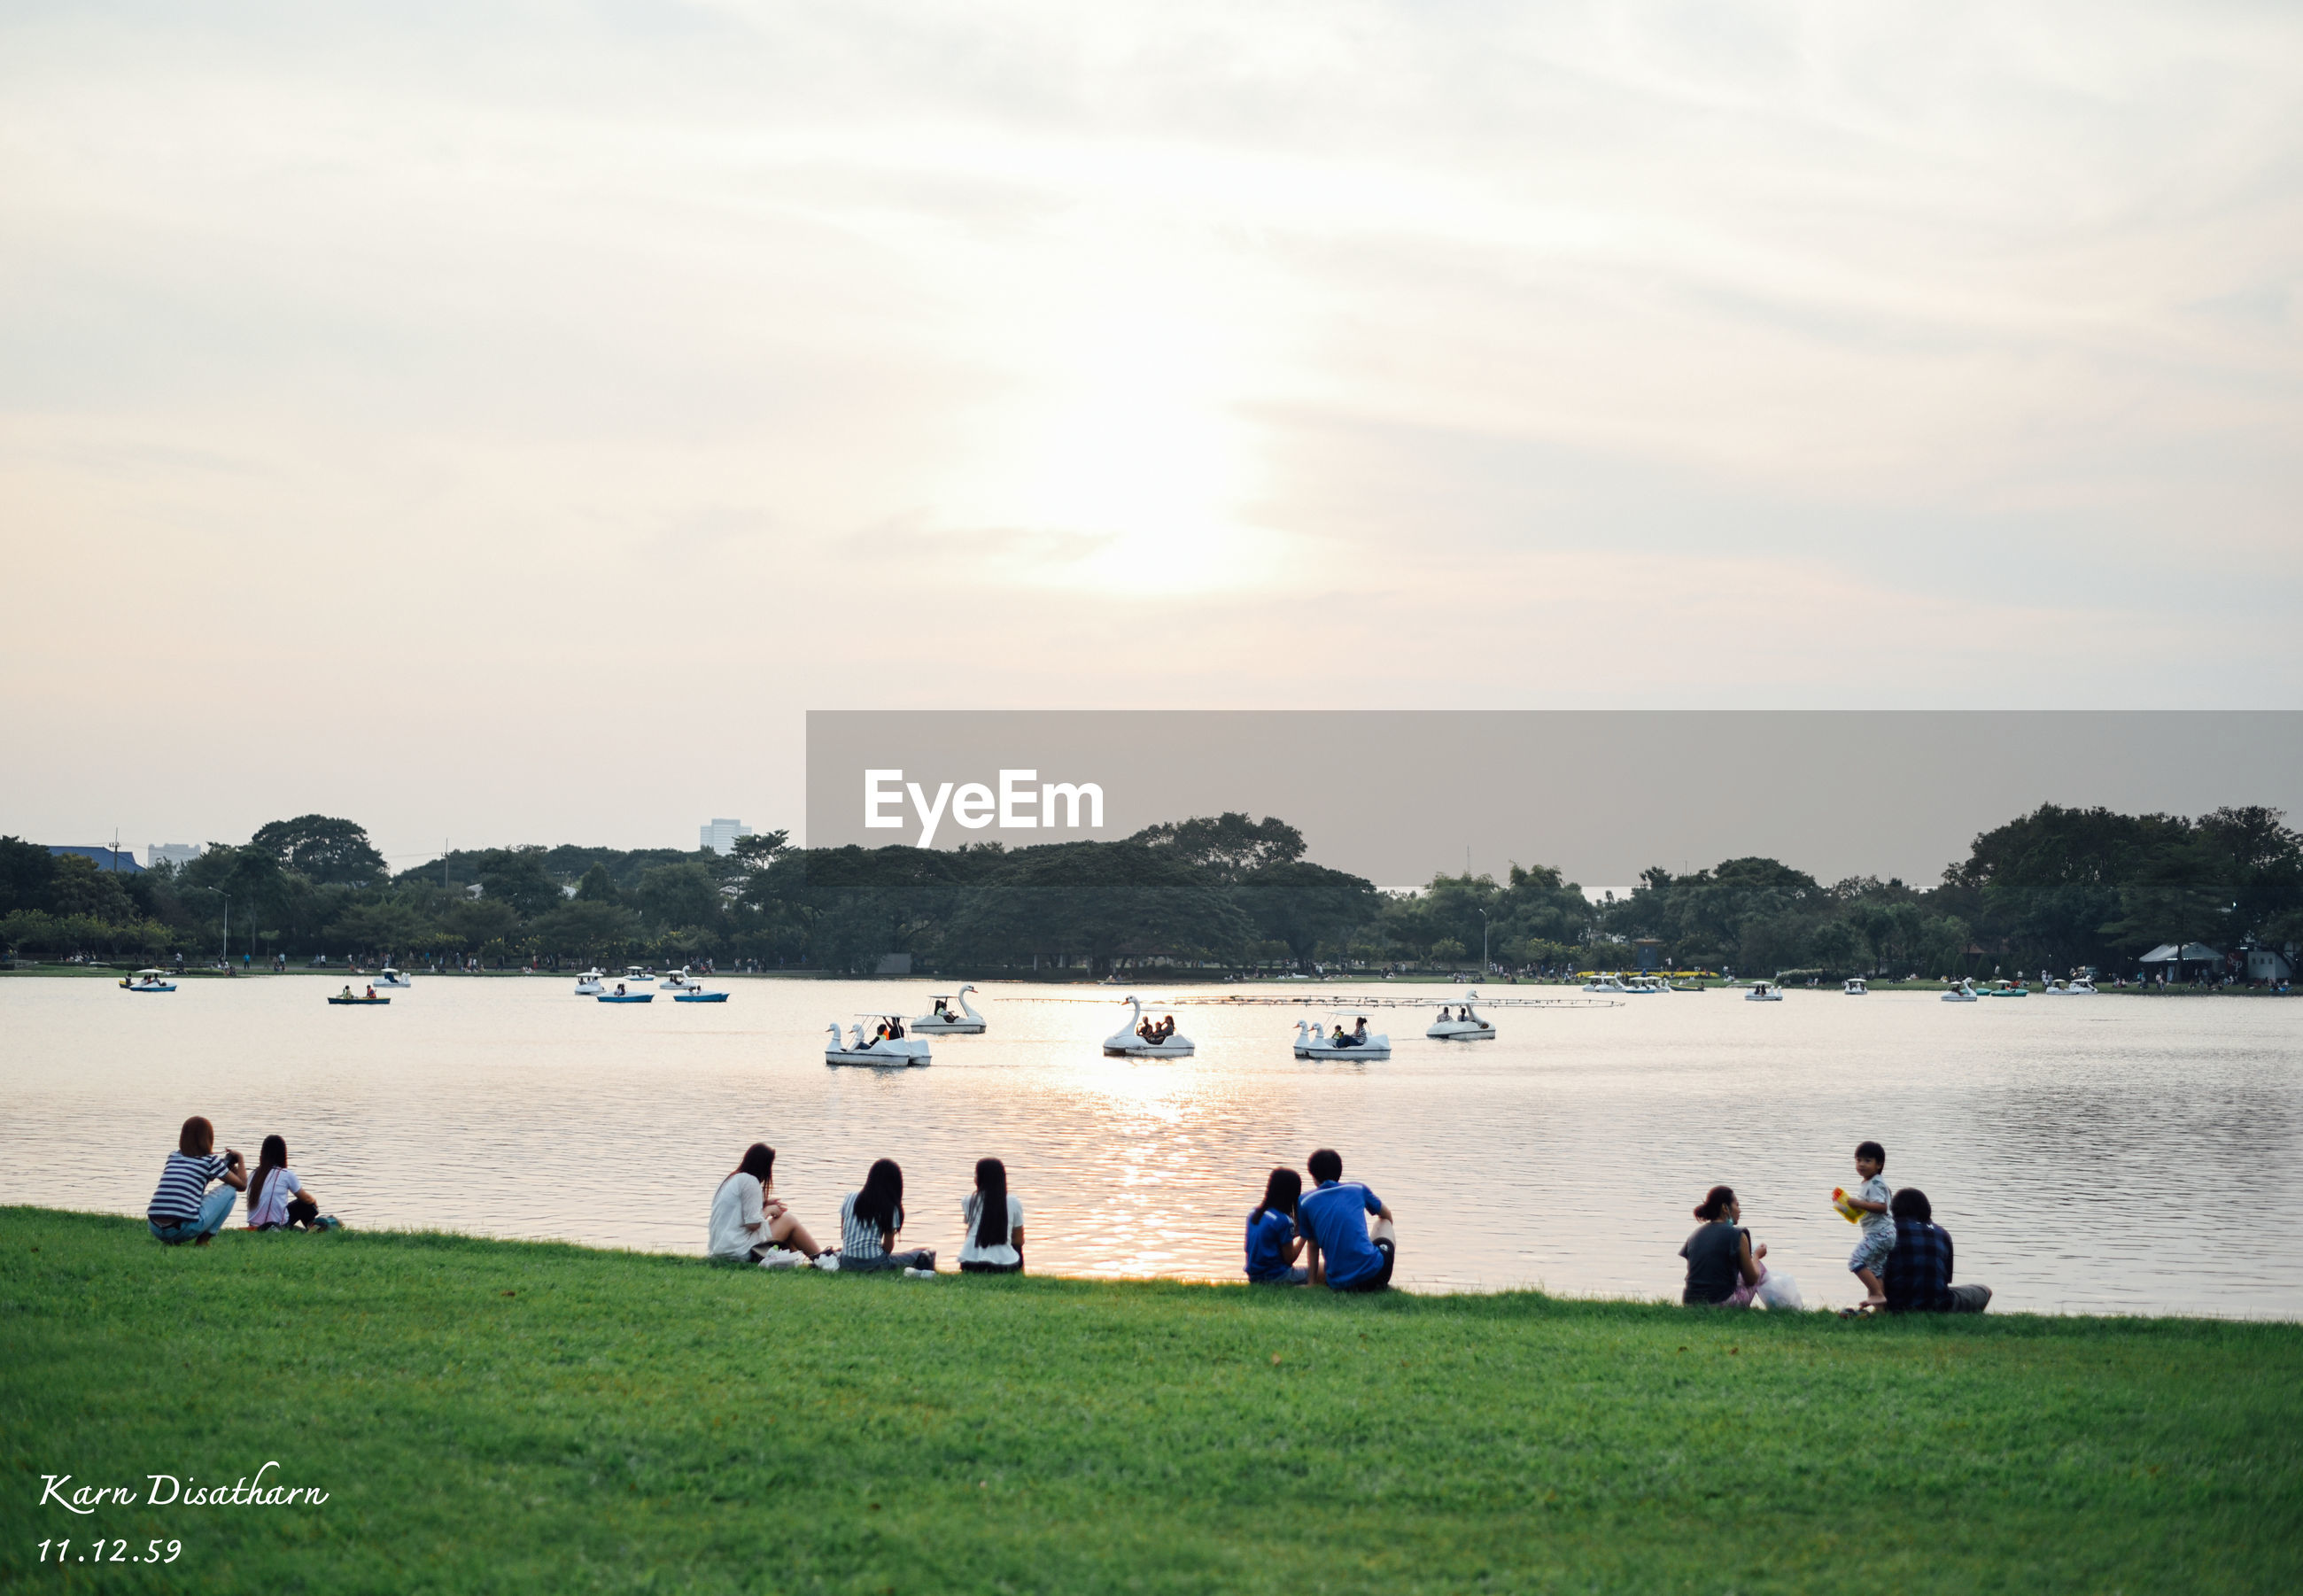 sky, large group of people, water, grass, leisure activity, real people, beach, sea, men, outdoors, tree, nature, vacations, growth, beauty in nature, cloud - sky, women, scenics, day, people, sports team, togetherness, adult, adults only